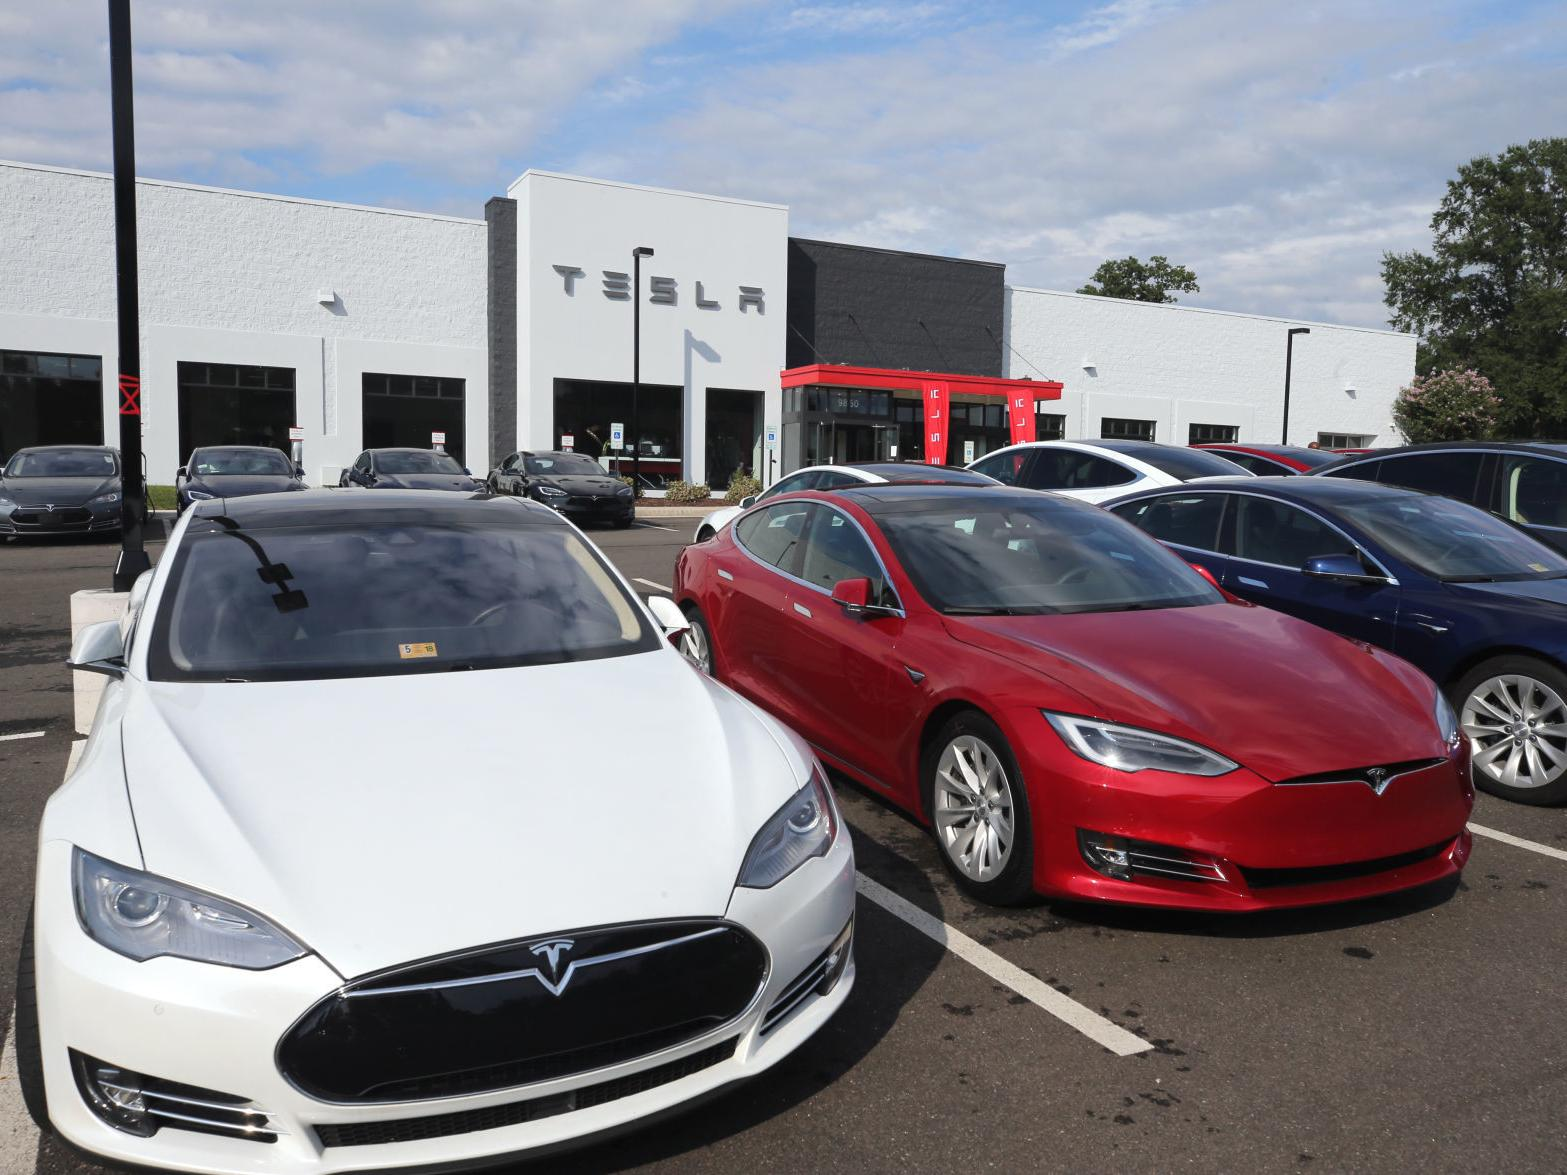 judge affirms dmv decision to allow tesla to operate automotive store in henrico business news richmond com judge affirms dmv decision to allow